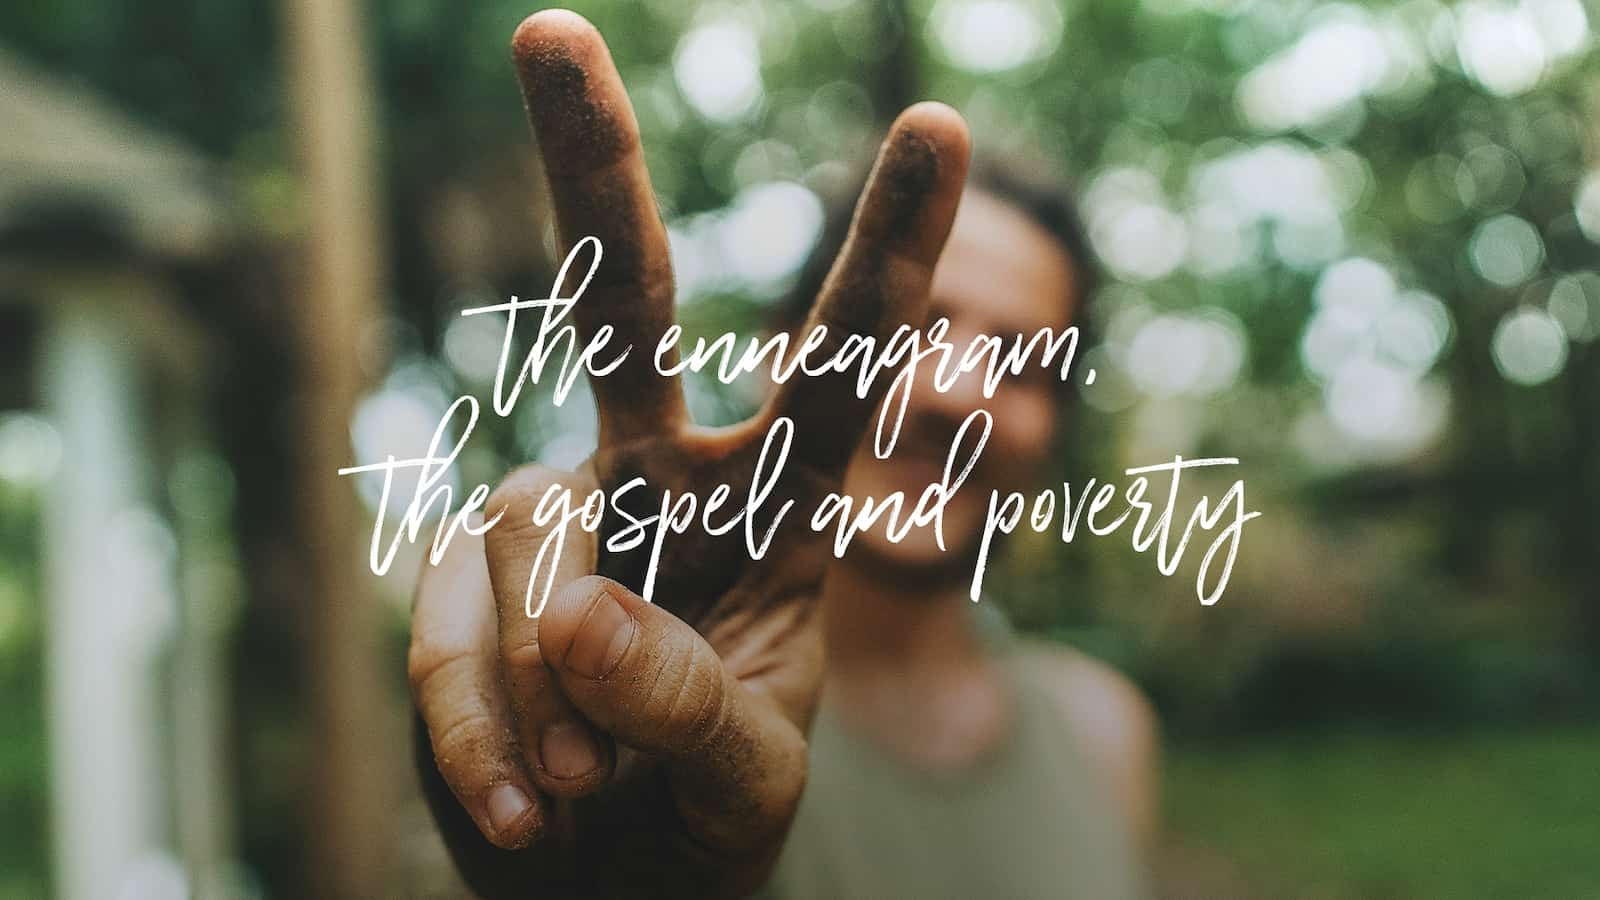 An up-close of fingers making the peace sign. Text: The Enneagram, the Gospel and Poverty